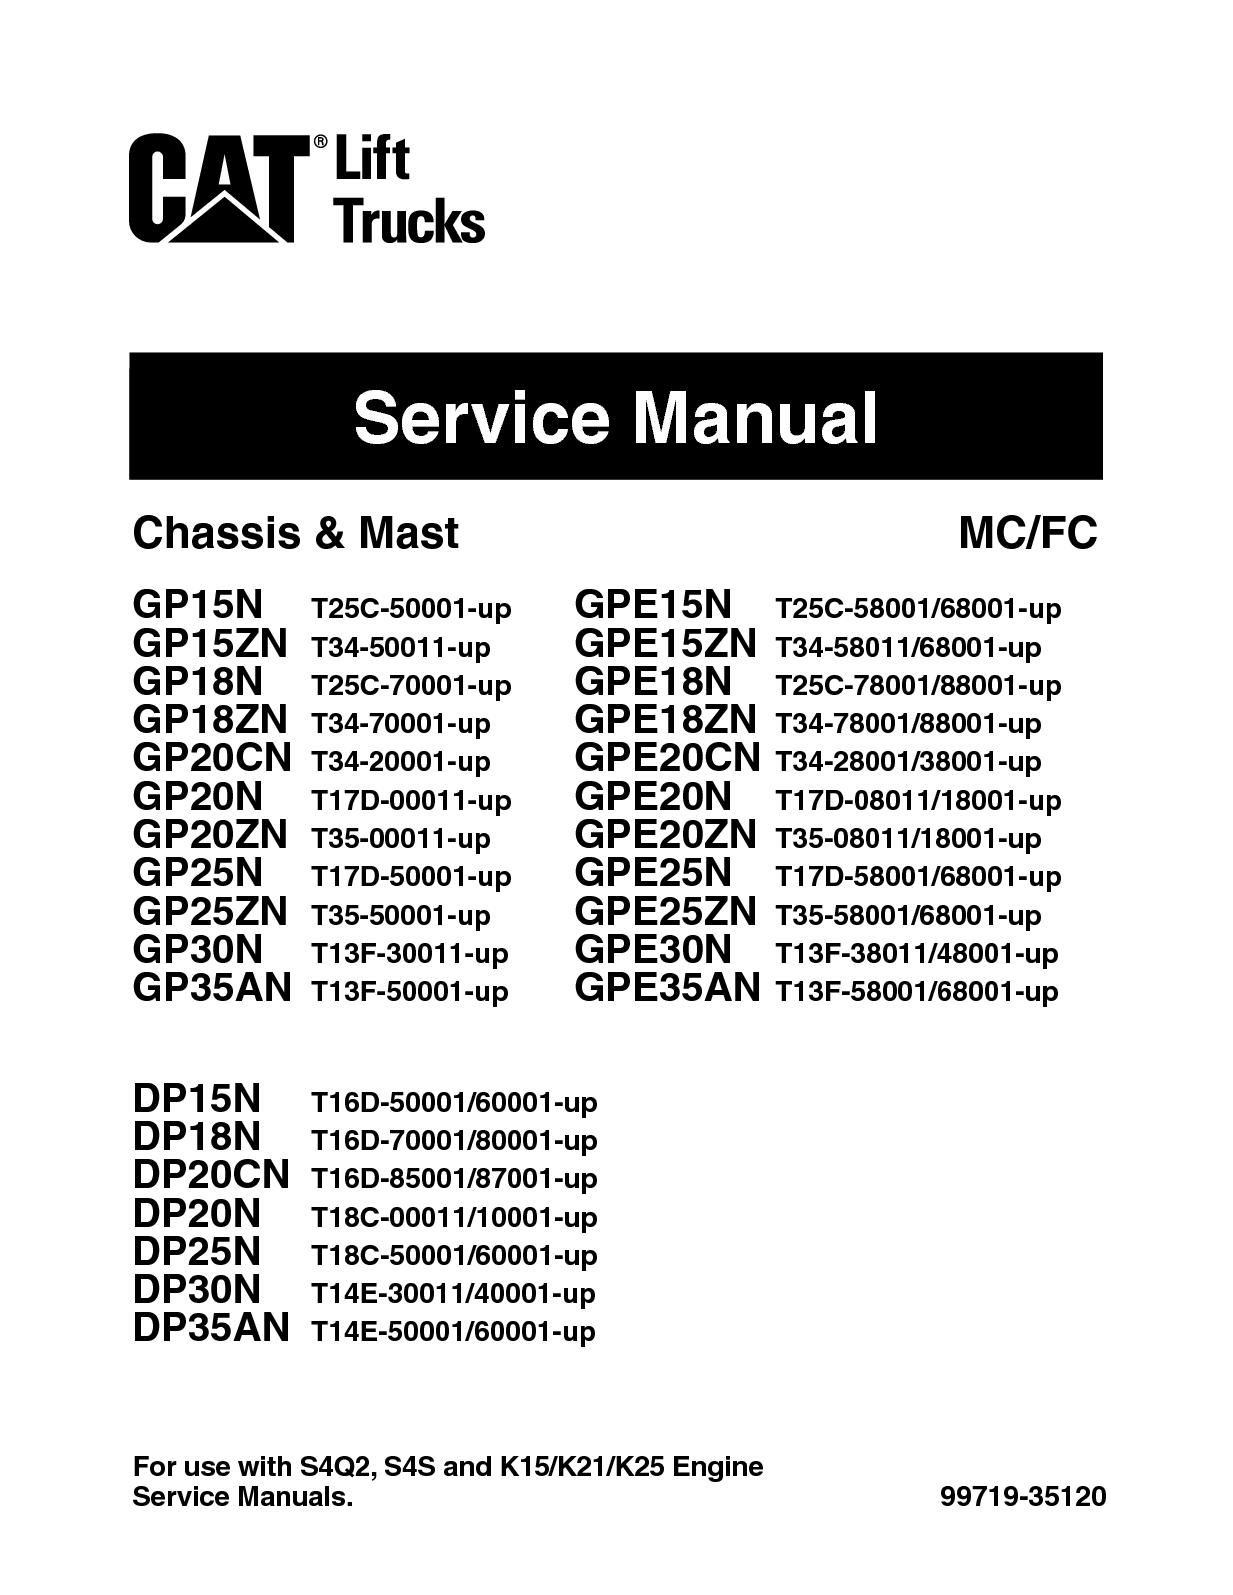 hight resolution of caterpillar cat gp35n forklift lift trucks service repair manual snt13f 50001 and up